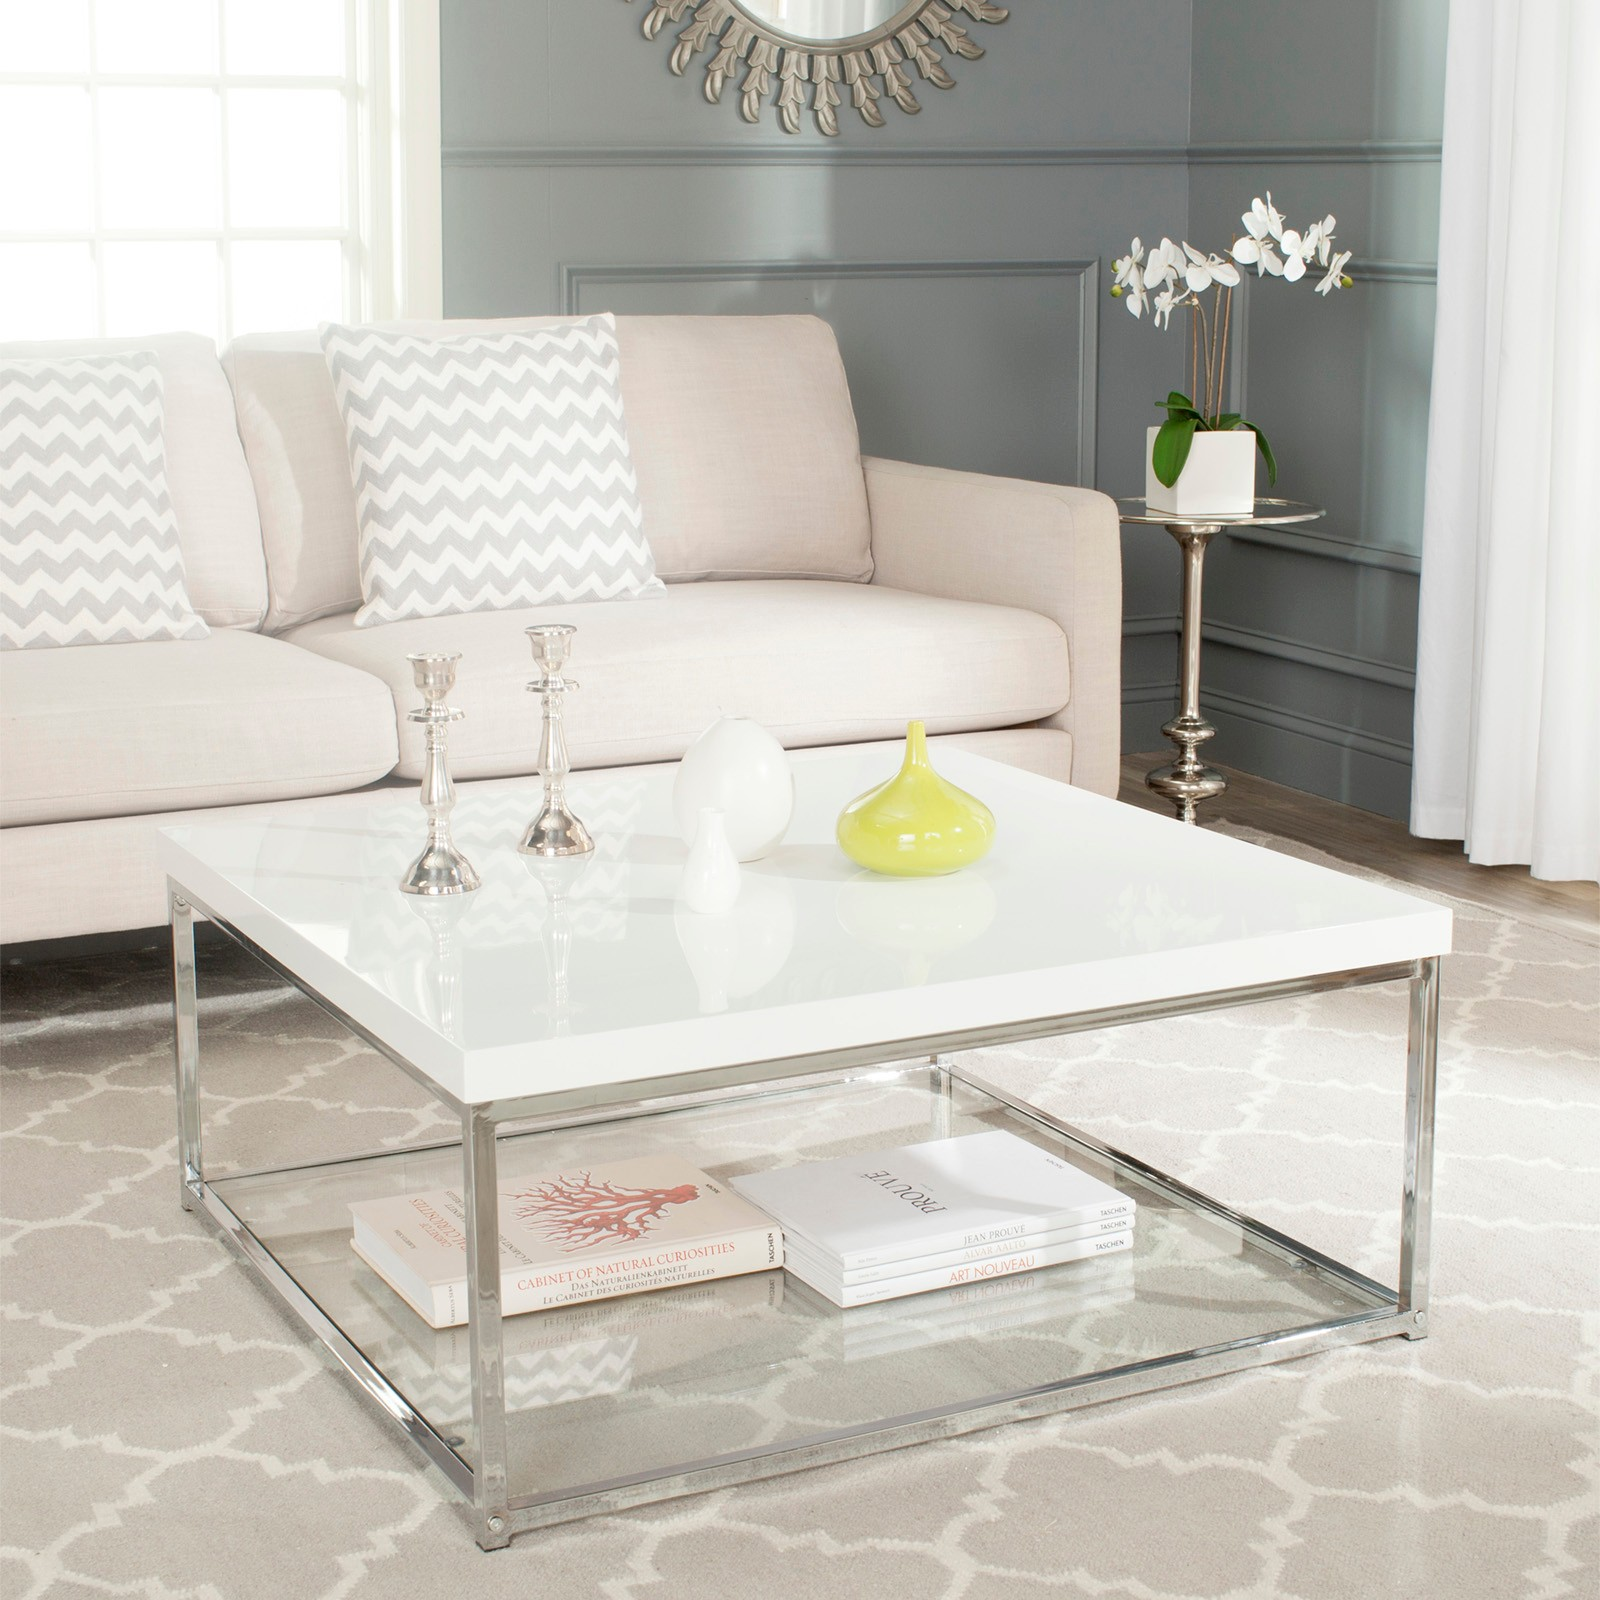 kitchen essentials by calphalon rohl faucets modern square coffee table safavieh | zola